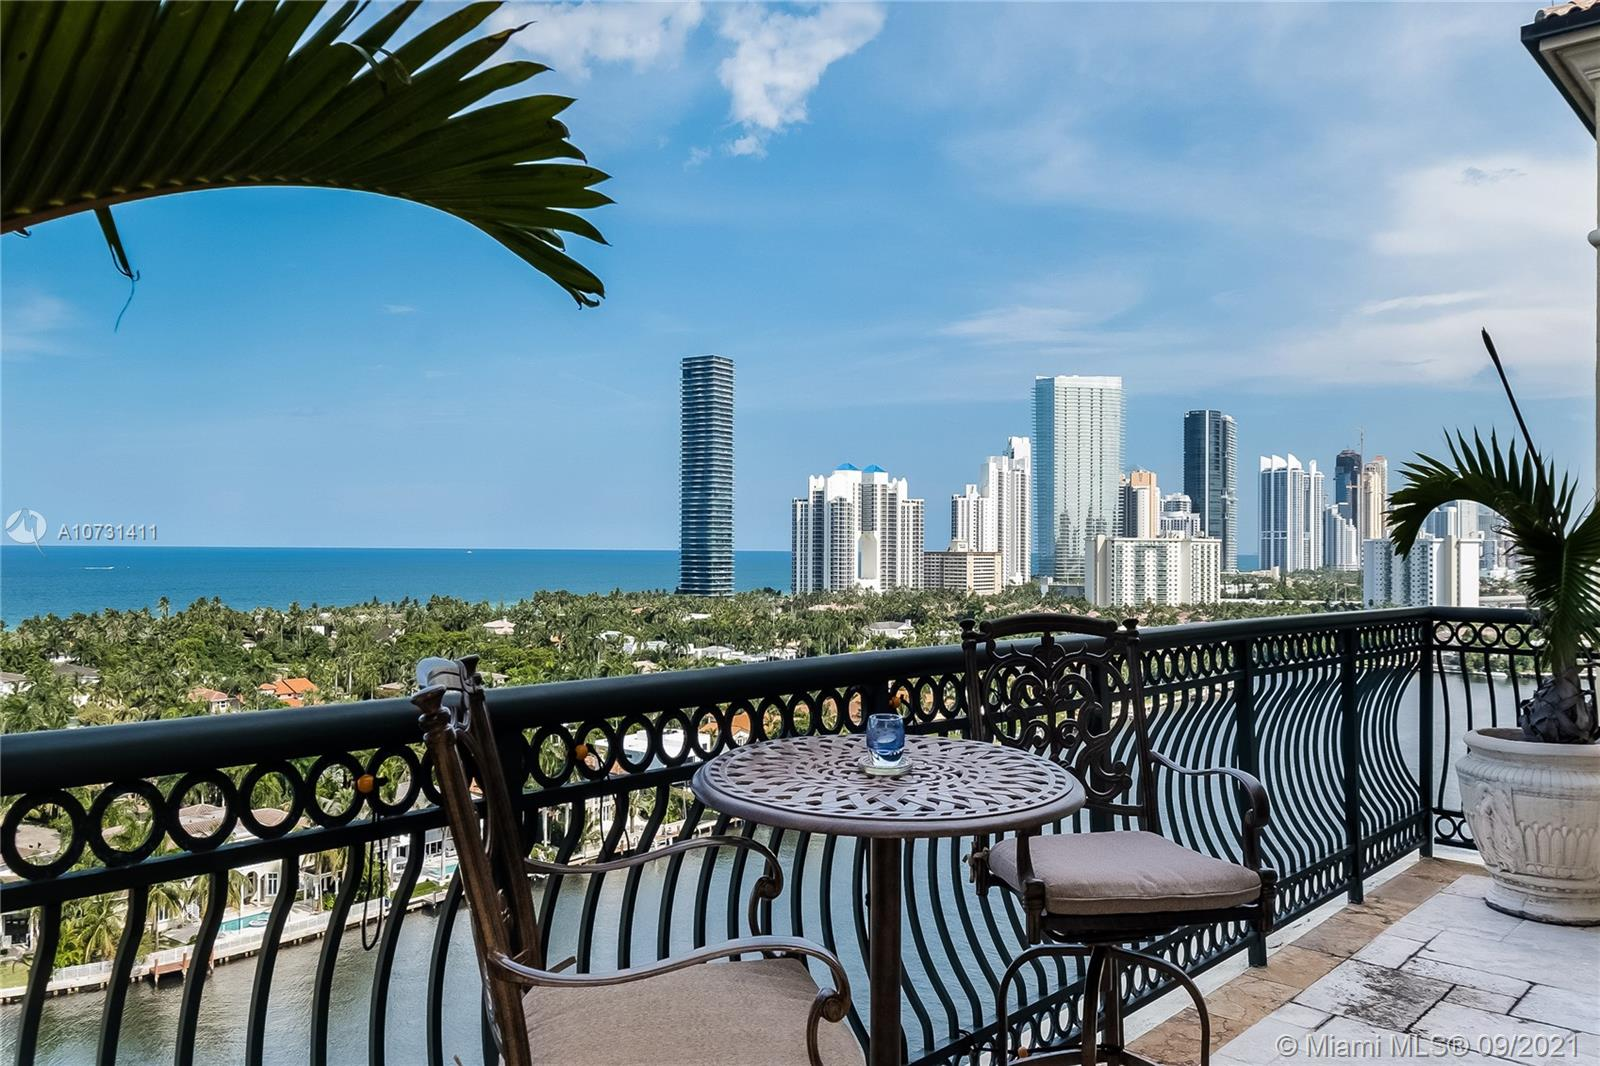 Rarely available, this 2-story PH in Bella Vista North at Porto Vita features 9,600SF of indoor living area plus 2,367SF of amazing terraces offering direct ocean views & stunning sunrise vistas over the Intracoastal. The custom designed interior displays the finest materials,superb craftsmanship & deluxe finishes. Elegant entertaining spaces are complemented by 5Bed/8.5Bath & service suite. Private elevator landing leads to a magnificent entrance gallery with a 24-foot domed ceiling. Gourmet chef's kitchen is outfitted w/top of the line appliances & center island. Master suite, his/hers bathrooms & outdoor courtyard are located on the 2nd floor. Amen: pool,spa,fitness center,restaurants,tennis/basketball, & secured gate house. Live the ultimate dream-the Porto Vita Lifestyle!